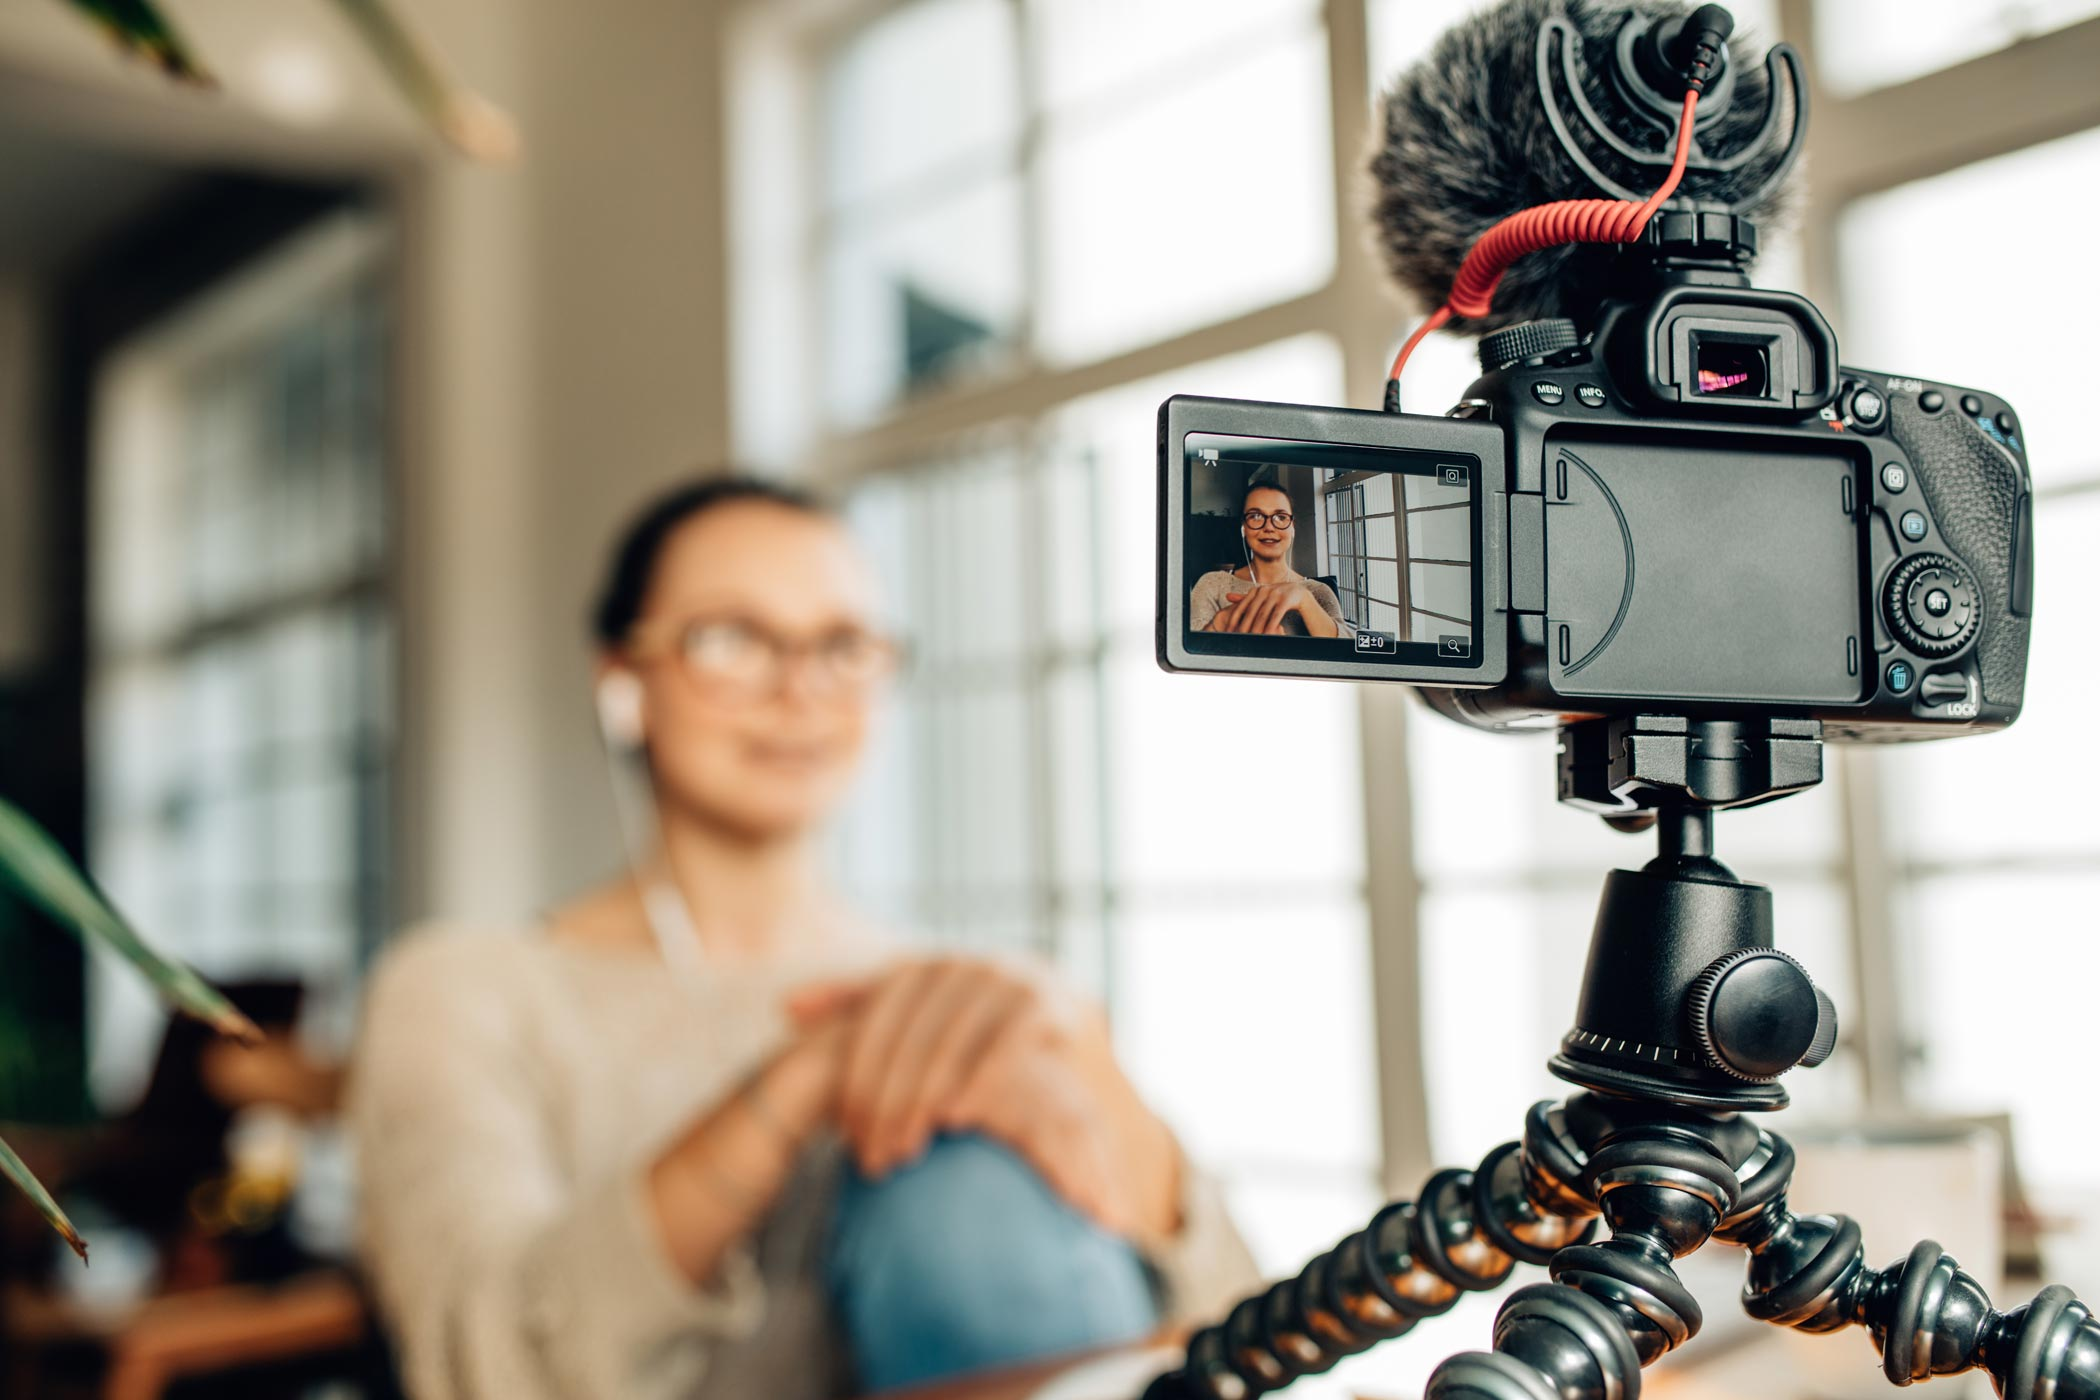 SEVEN REASONS VIDEO CONTENT SHOULD BE PART OF YOUR MARKETING PLAN